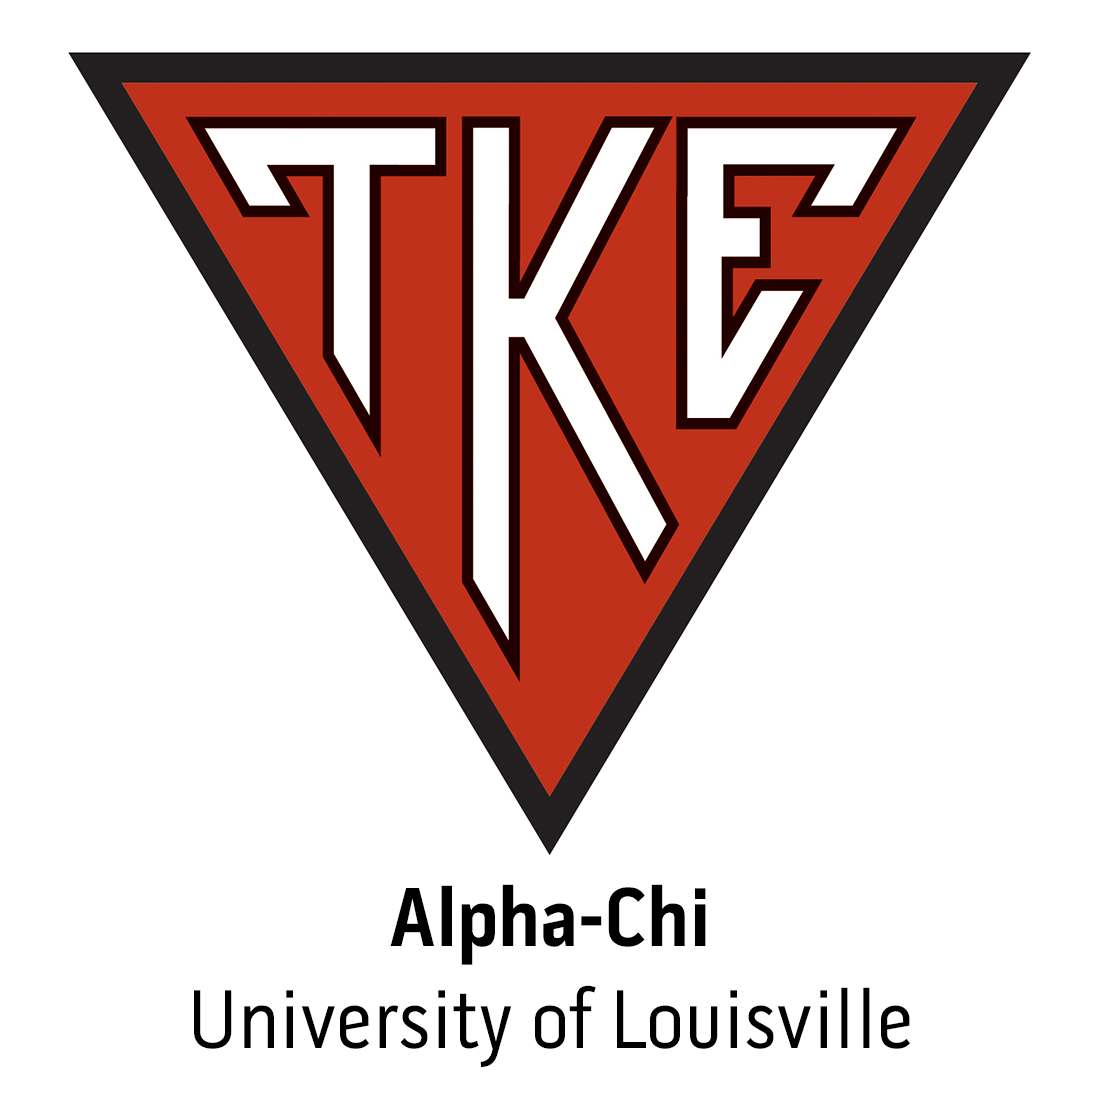 Alpha-Chi Chapter at University of Louisville